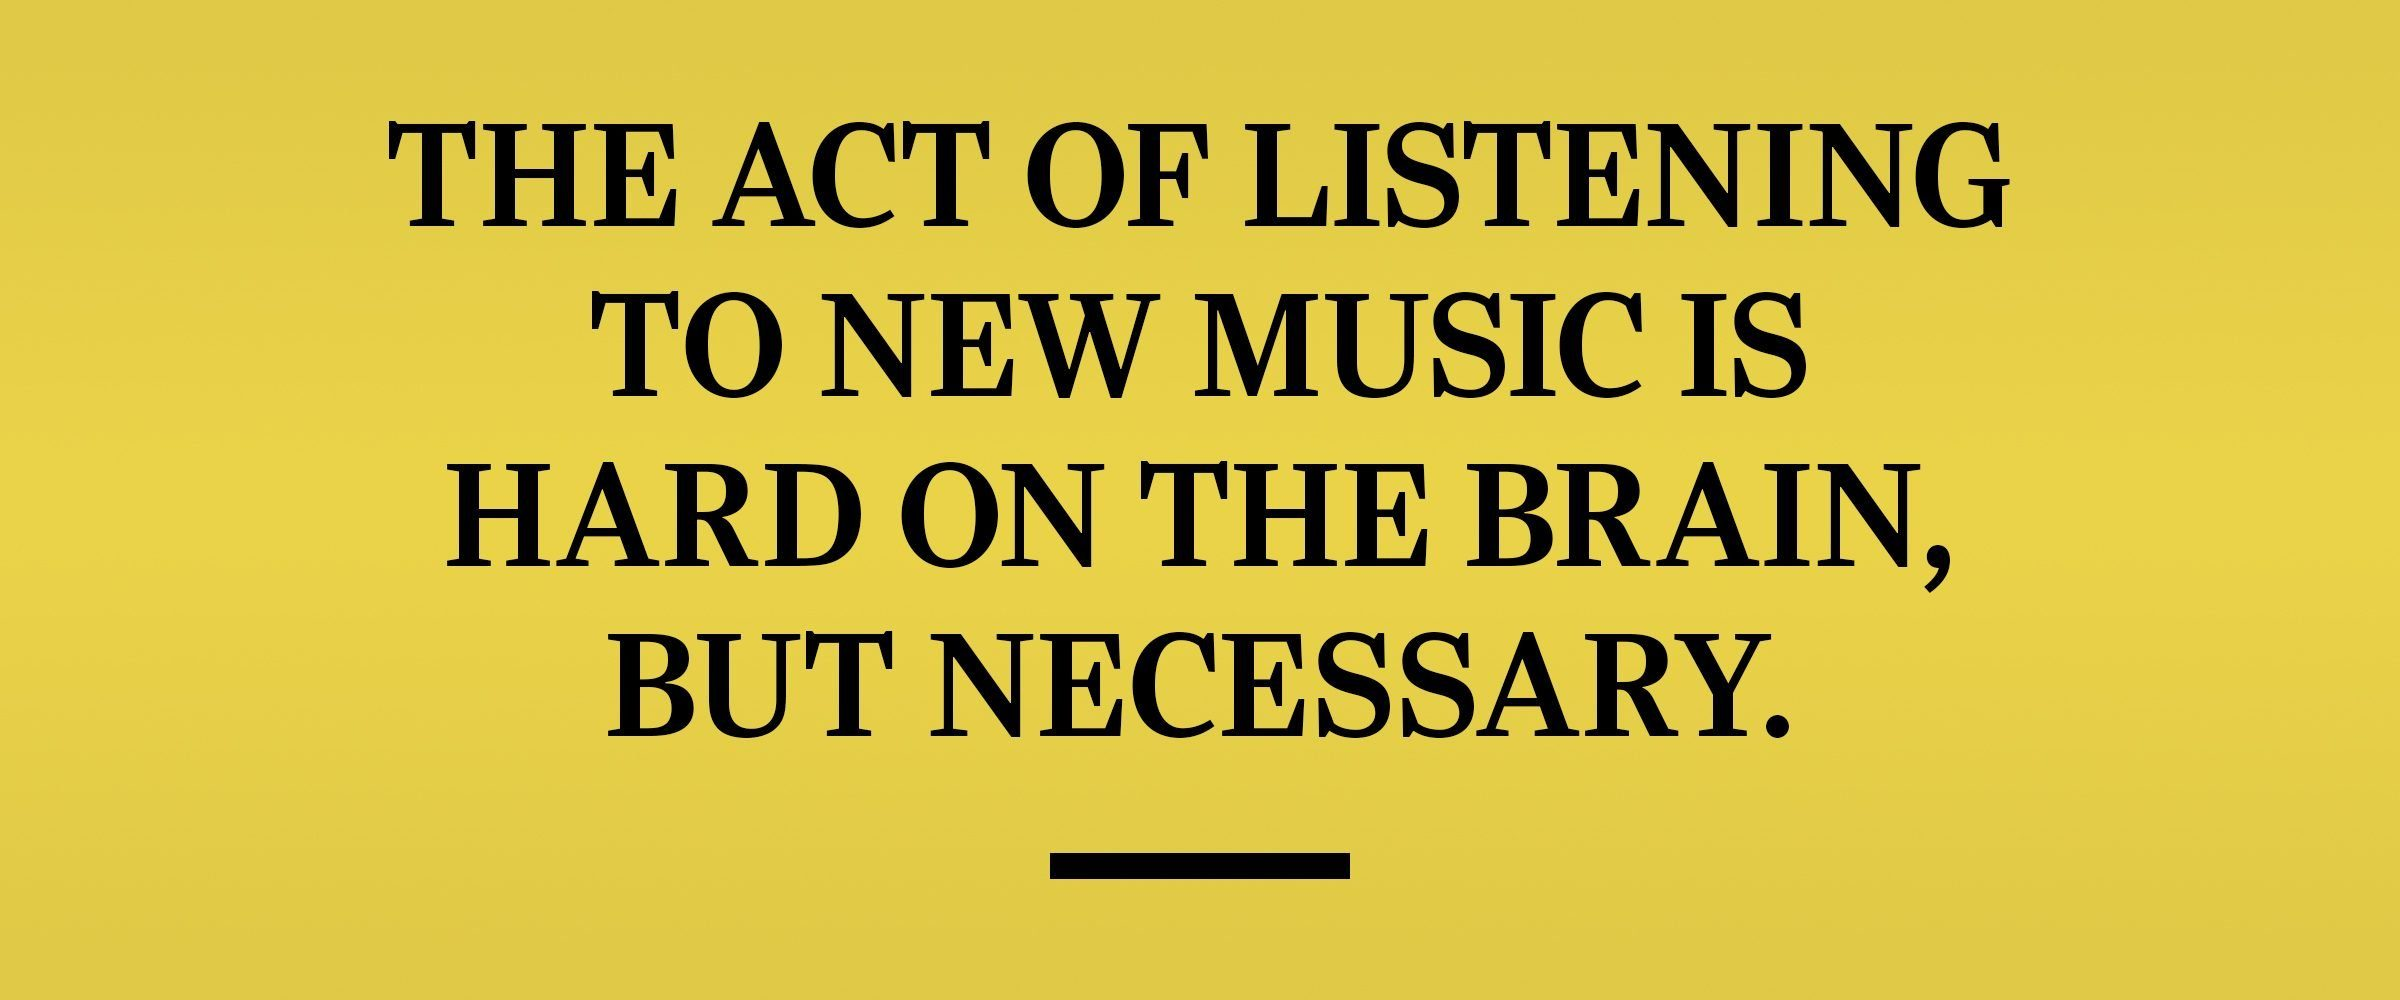 text: The act of listening to new music is hard on the brain, but necessary.